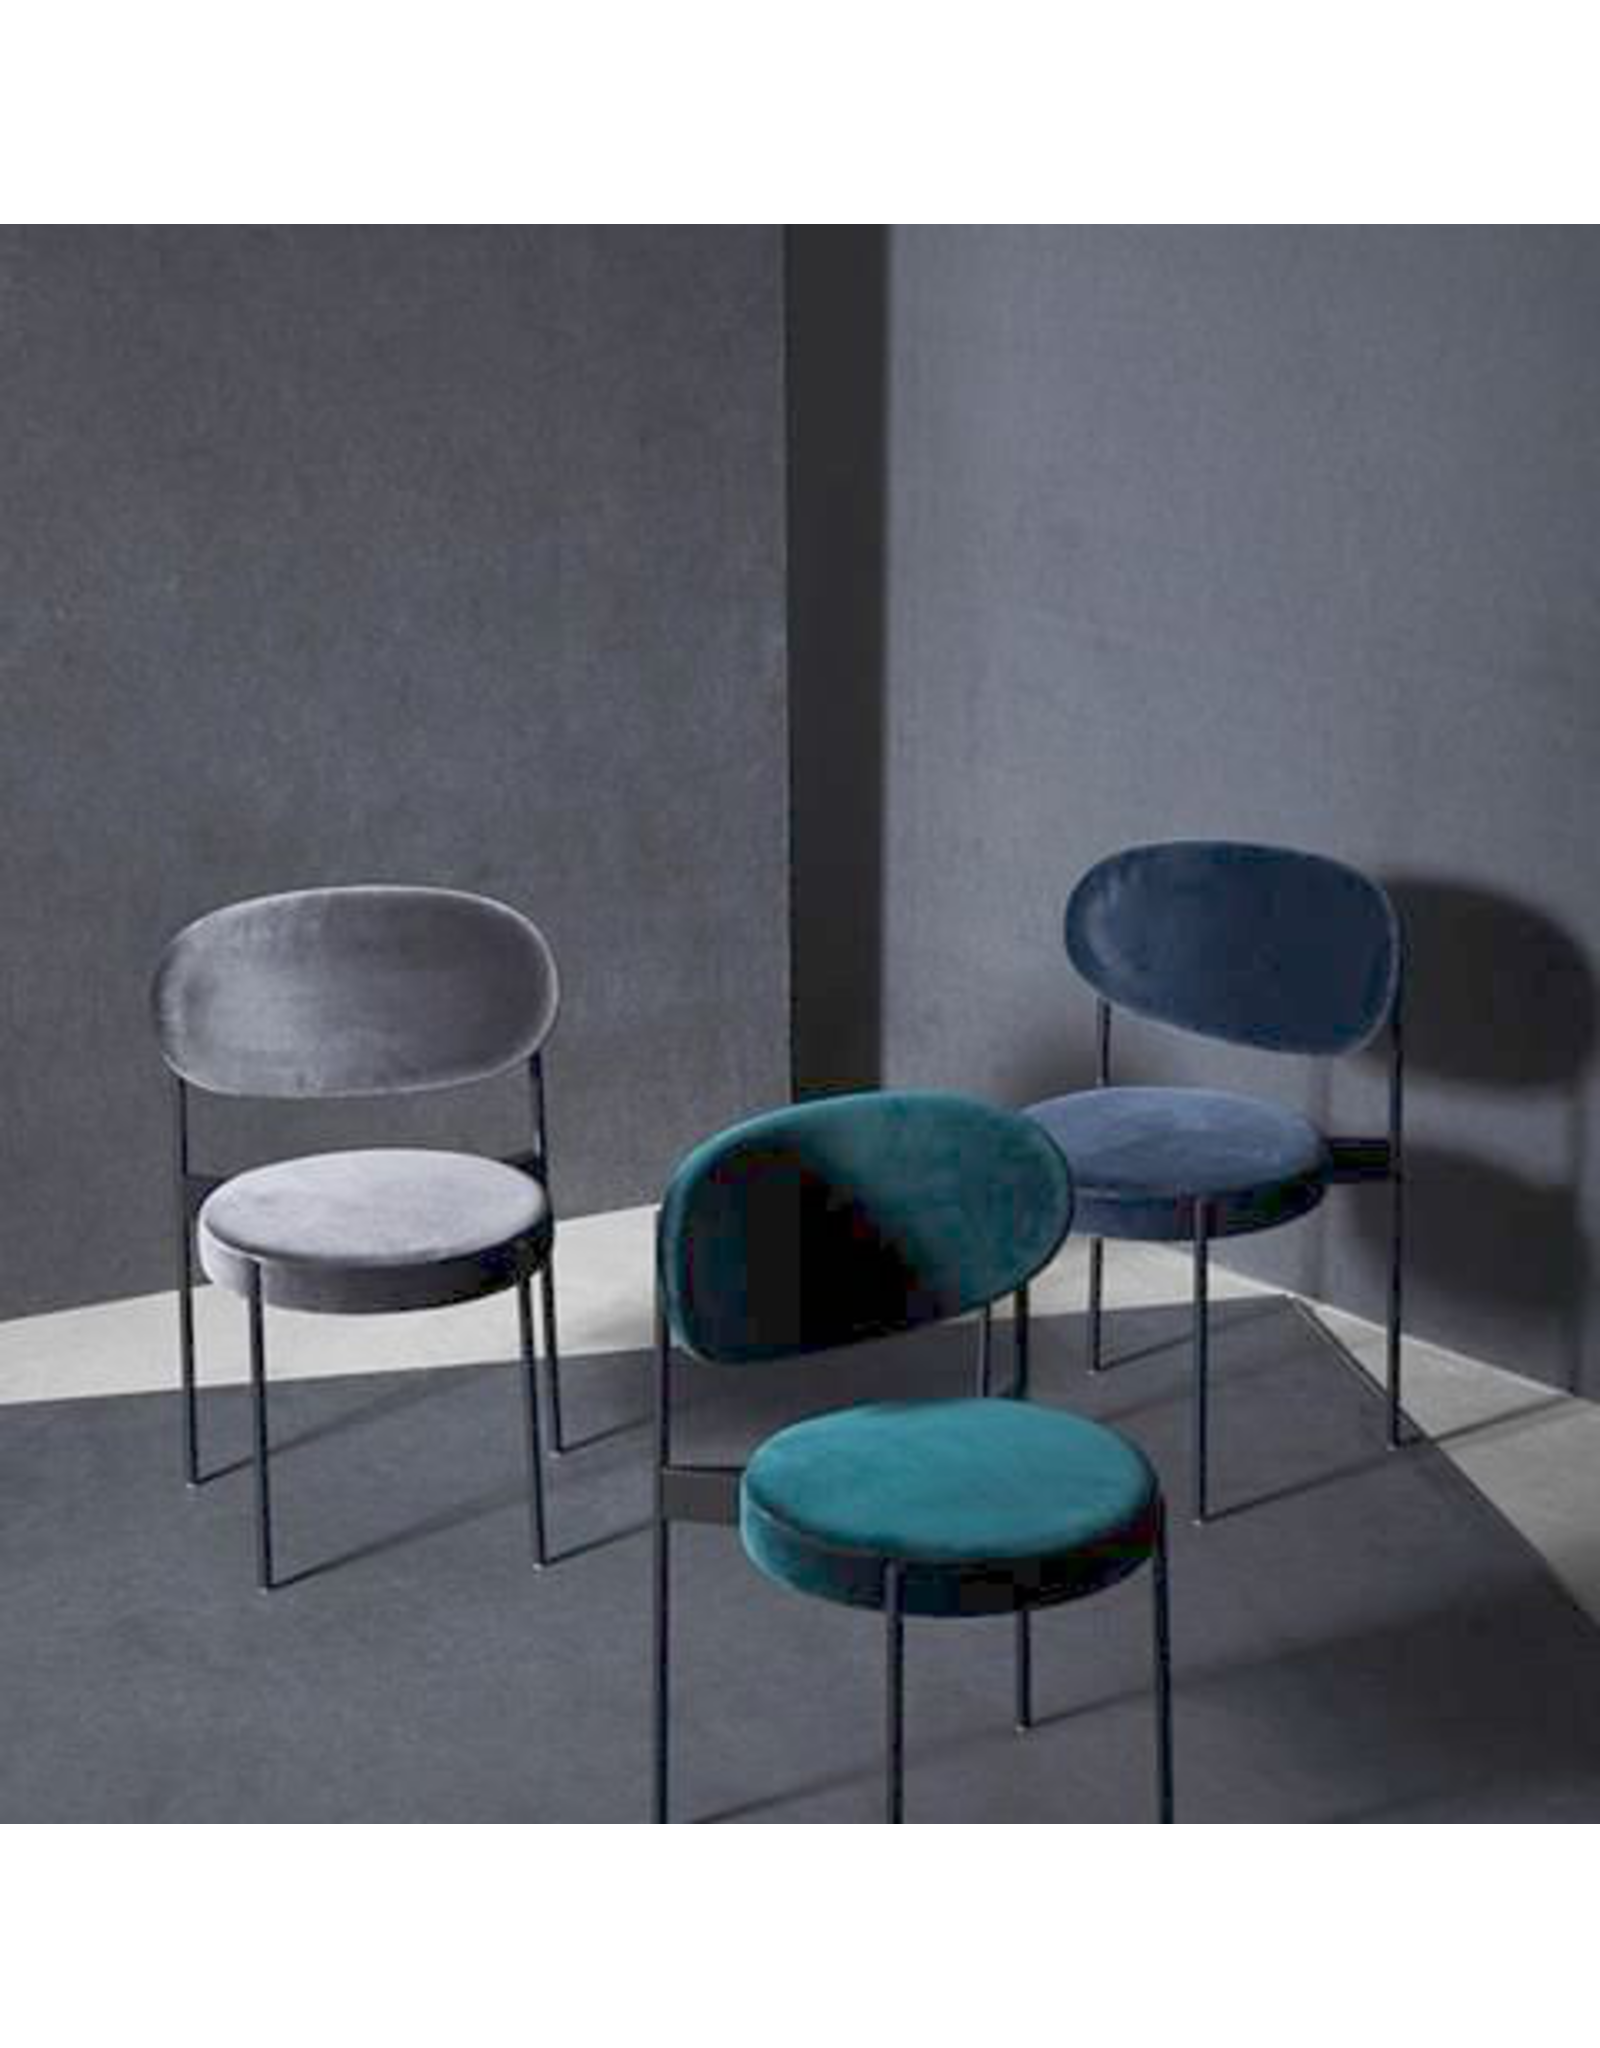 SERIES 430 CHAIR FULLY UPHOLSTERED IN FABRIC